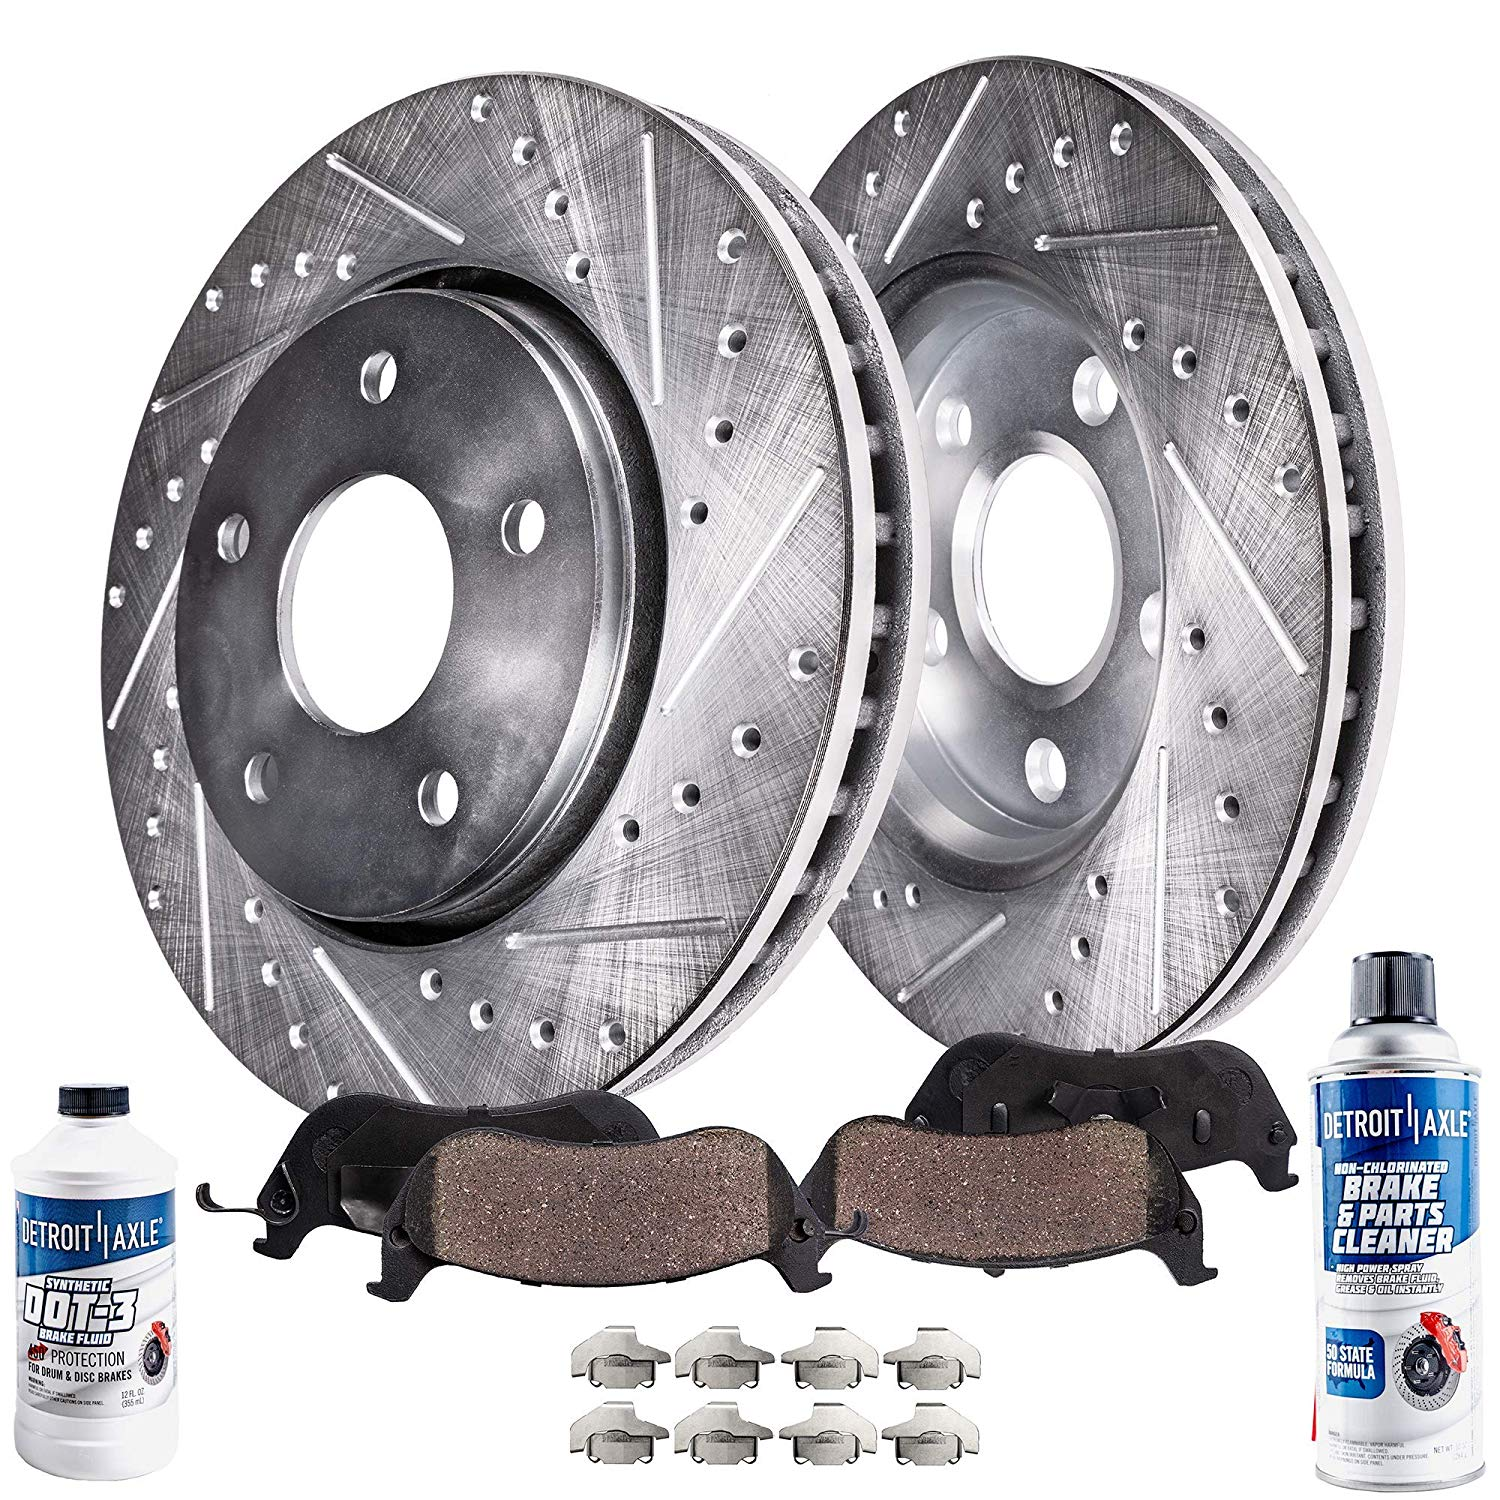 Front And Rear Brake Rotors /& Ceramic Pads For 1993-1997 Thunderbird Cougar